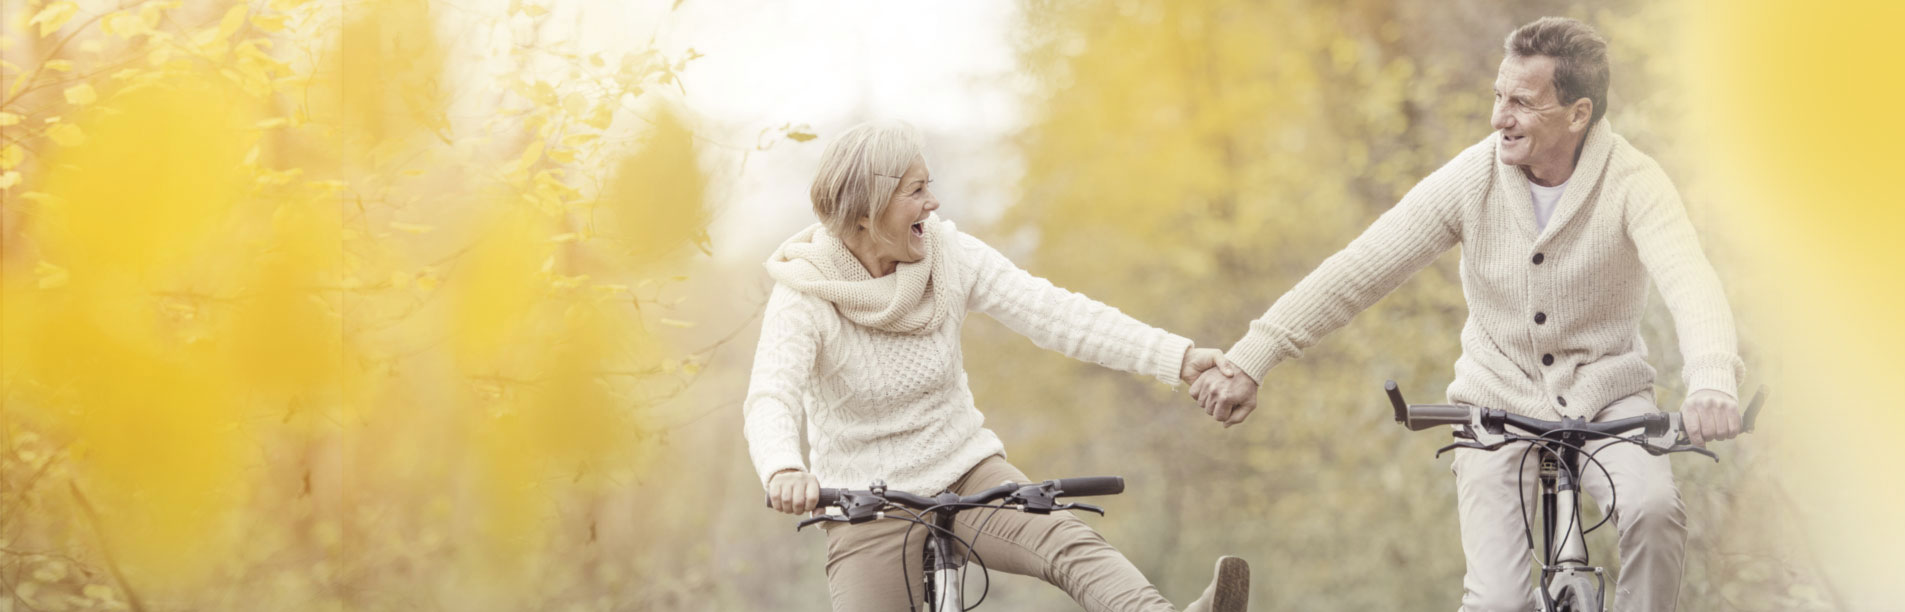 A couple with healthy teeth laughs while riding bikes.